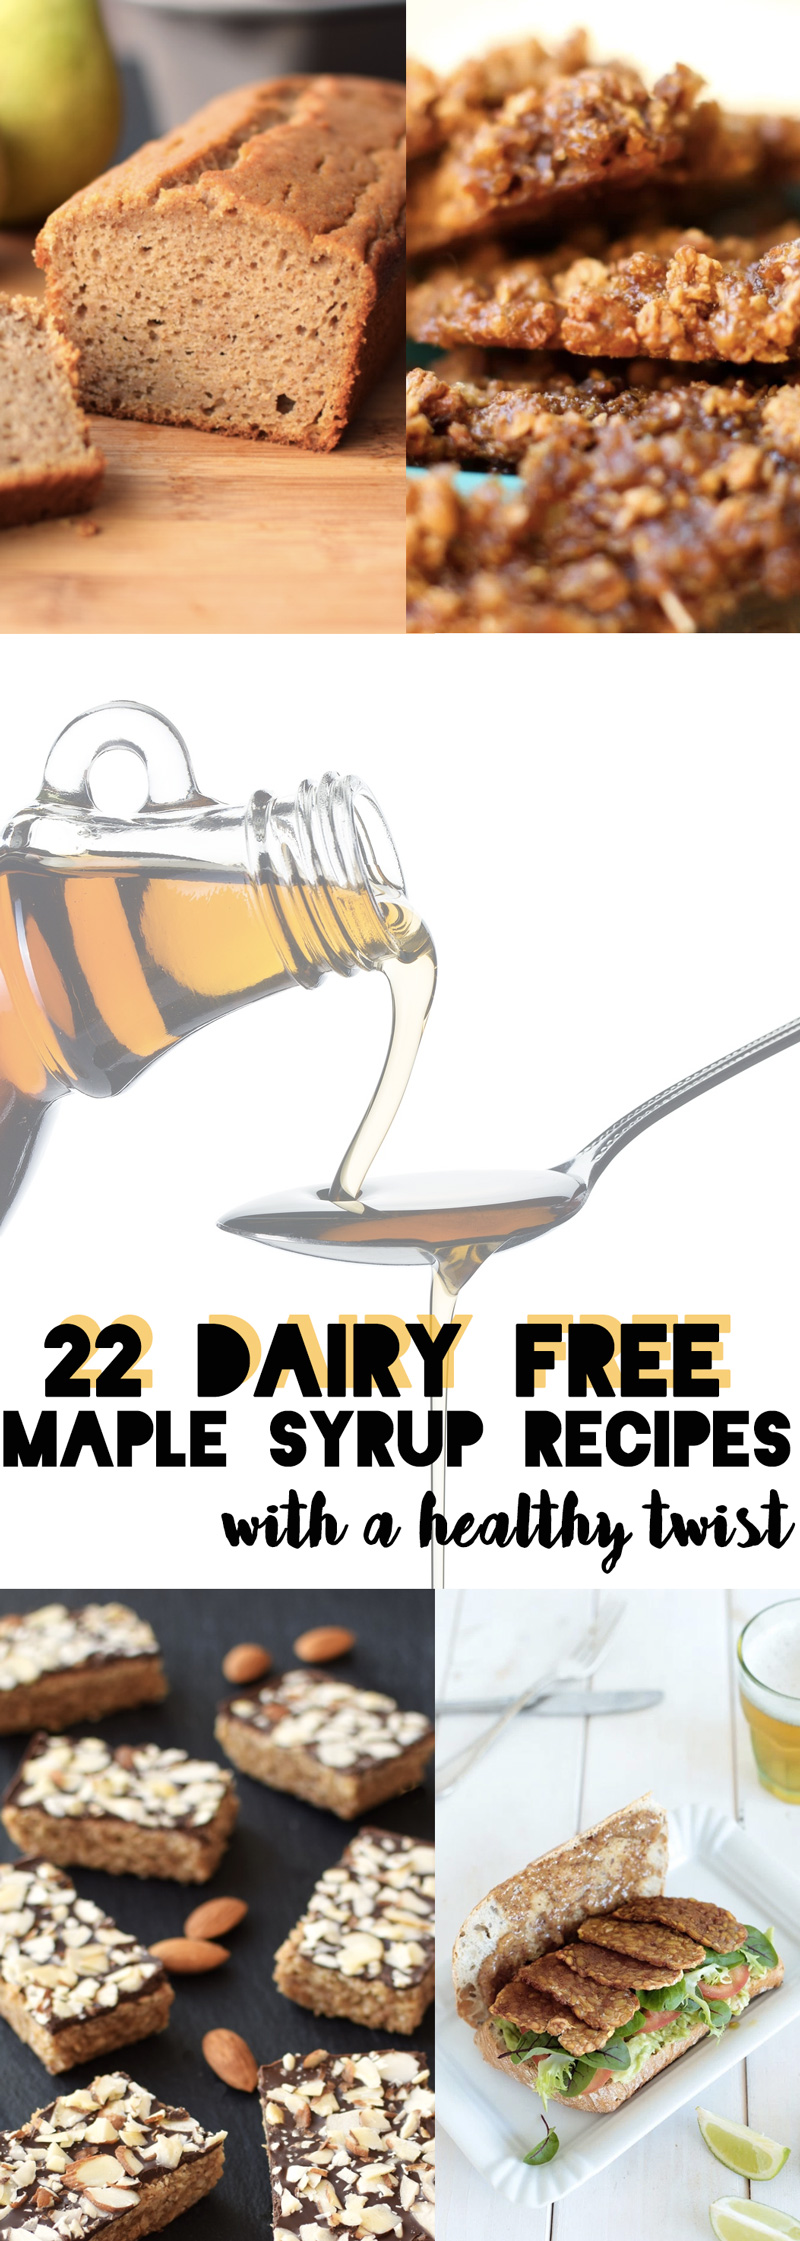 22 Dairy Free Maple Syrup Recipes with a Healthy Twist (most vegan and gluten-free too!)